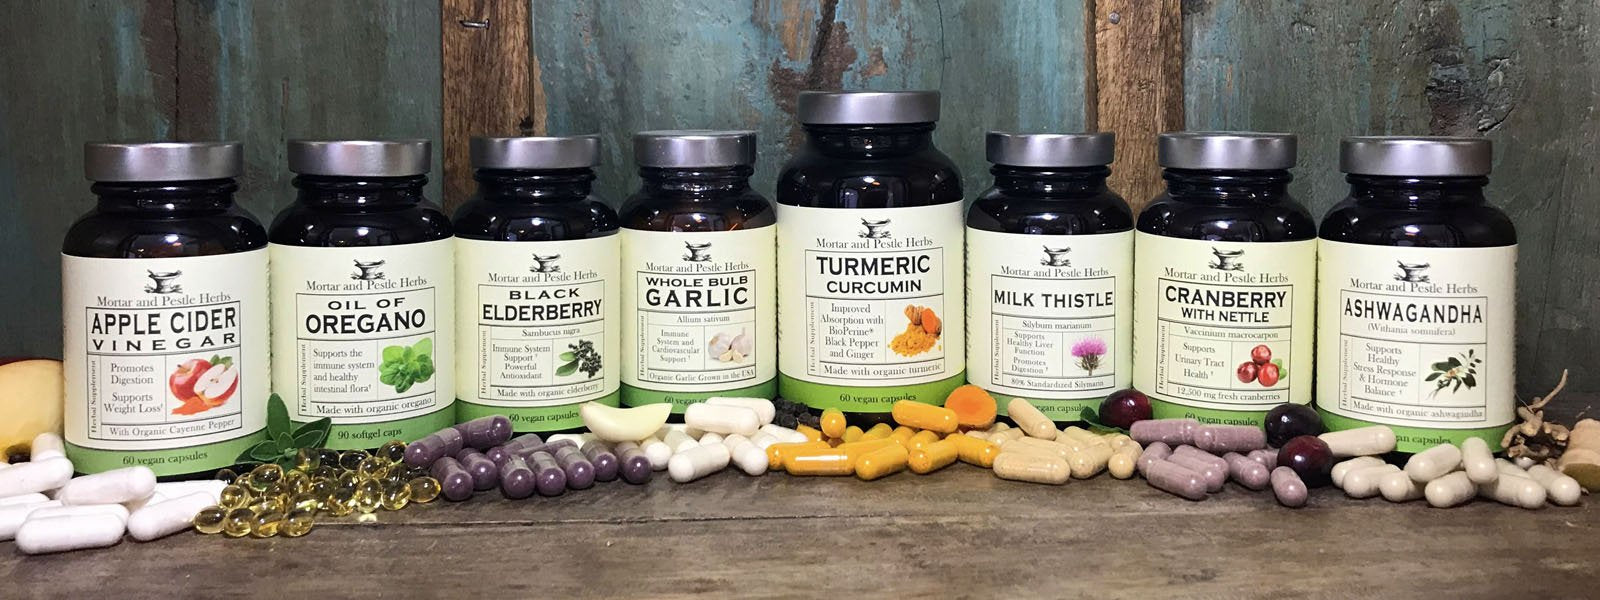 What sets Herbal Roots apart from hundreds of other supplement companies?